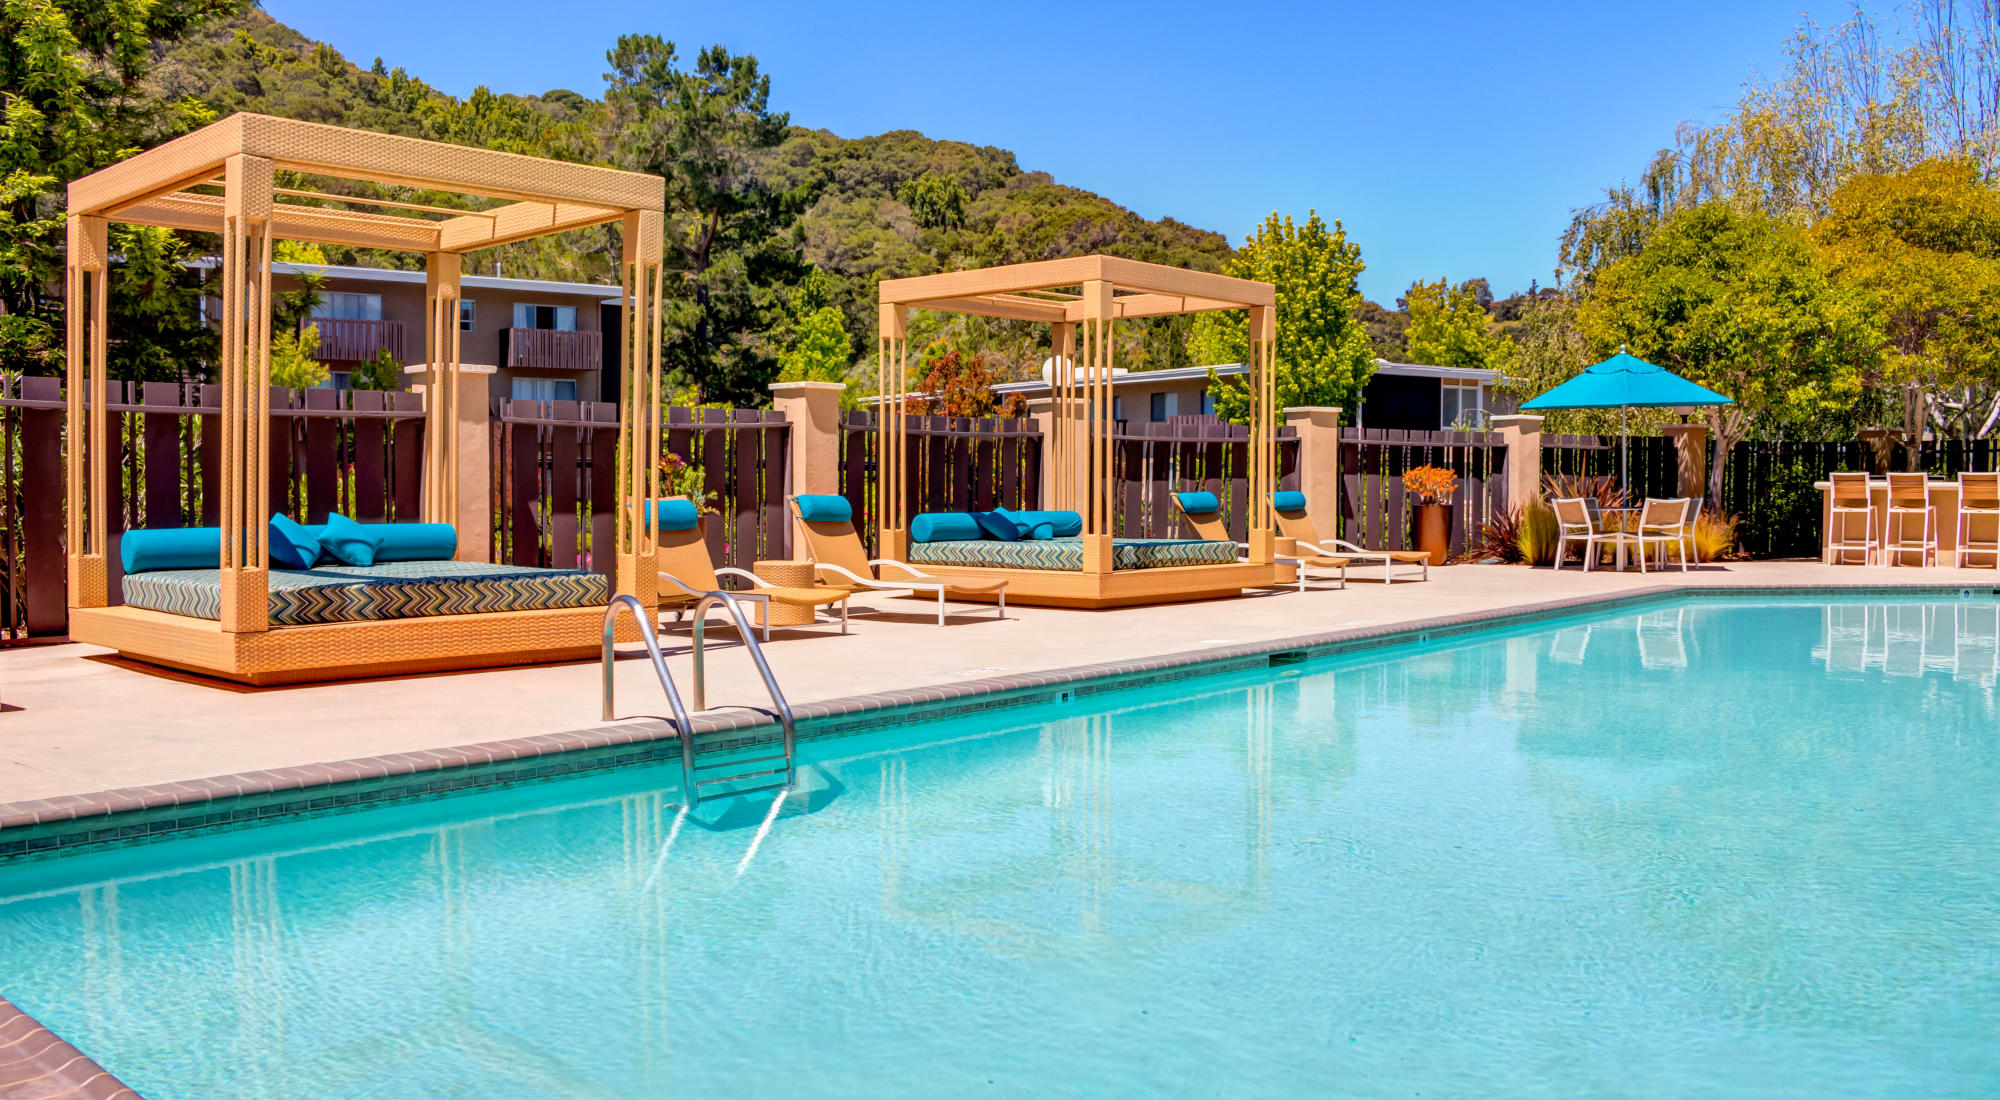 Apply to live at Sofi Belmont Hills in Belmont, California